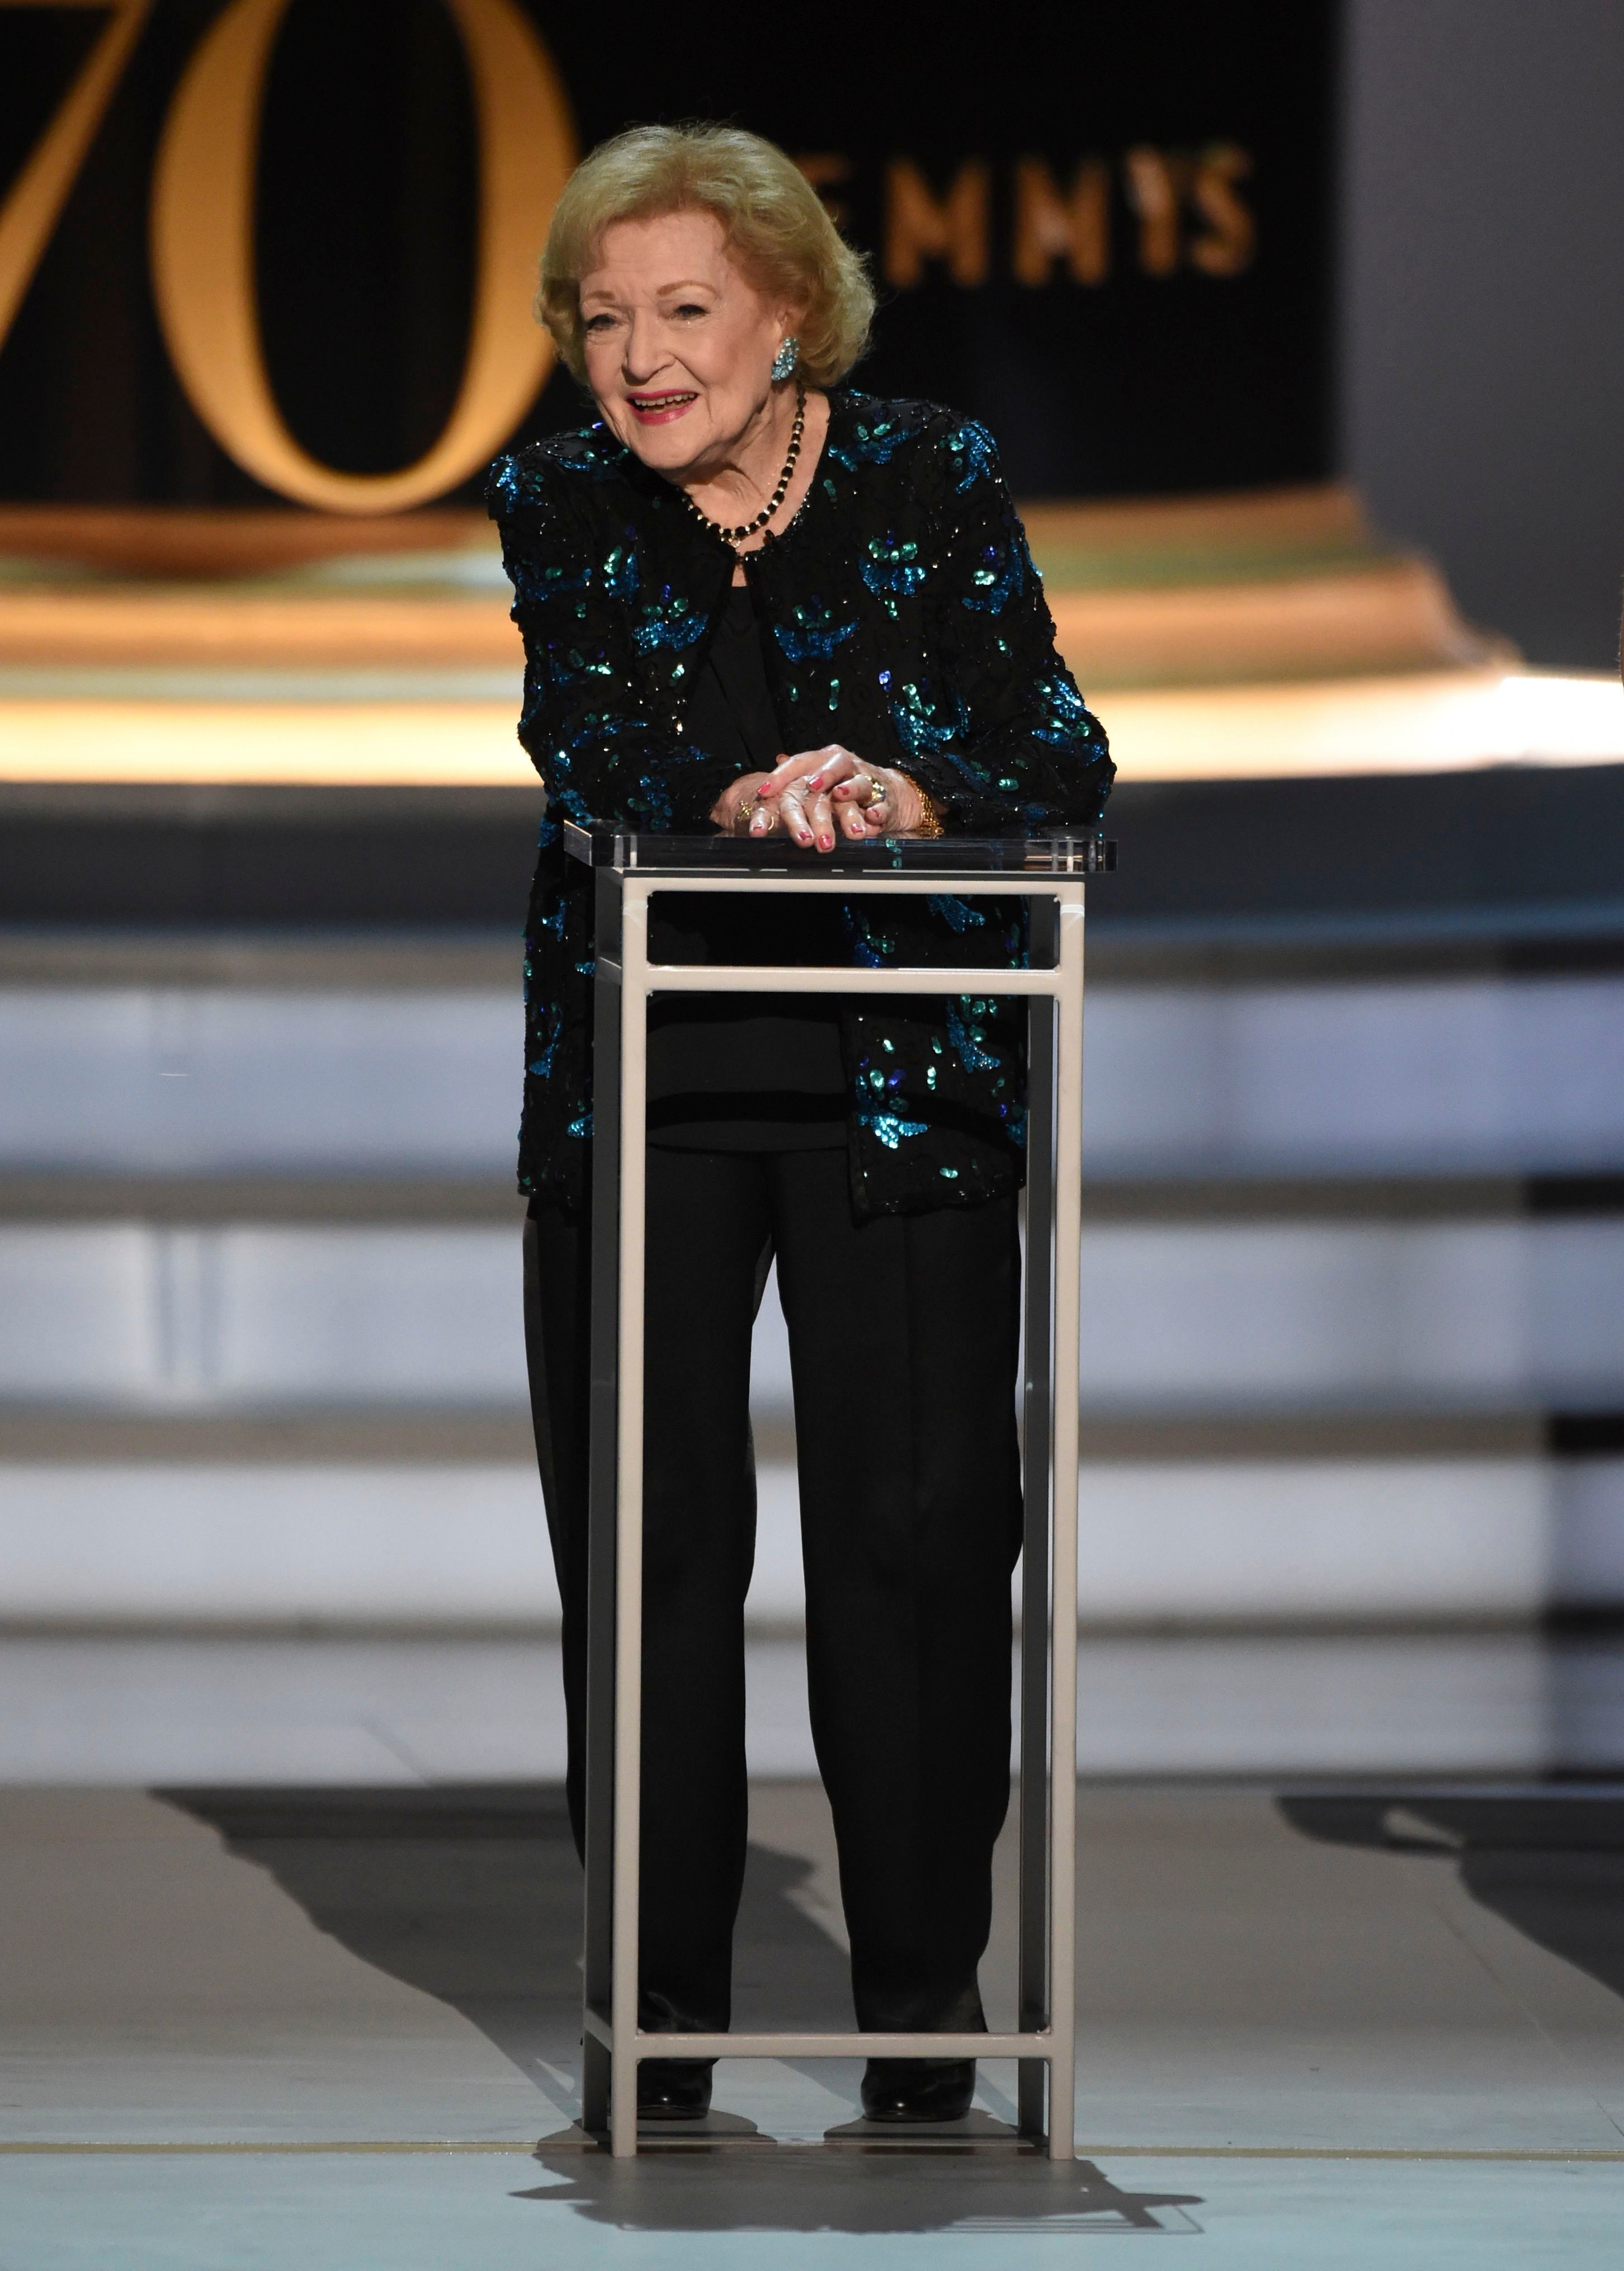 Betty White speaks on stage at the 70th Primetime Emmy Awards in Los Angeles on Sept. 17, 2018.